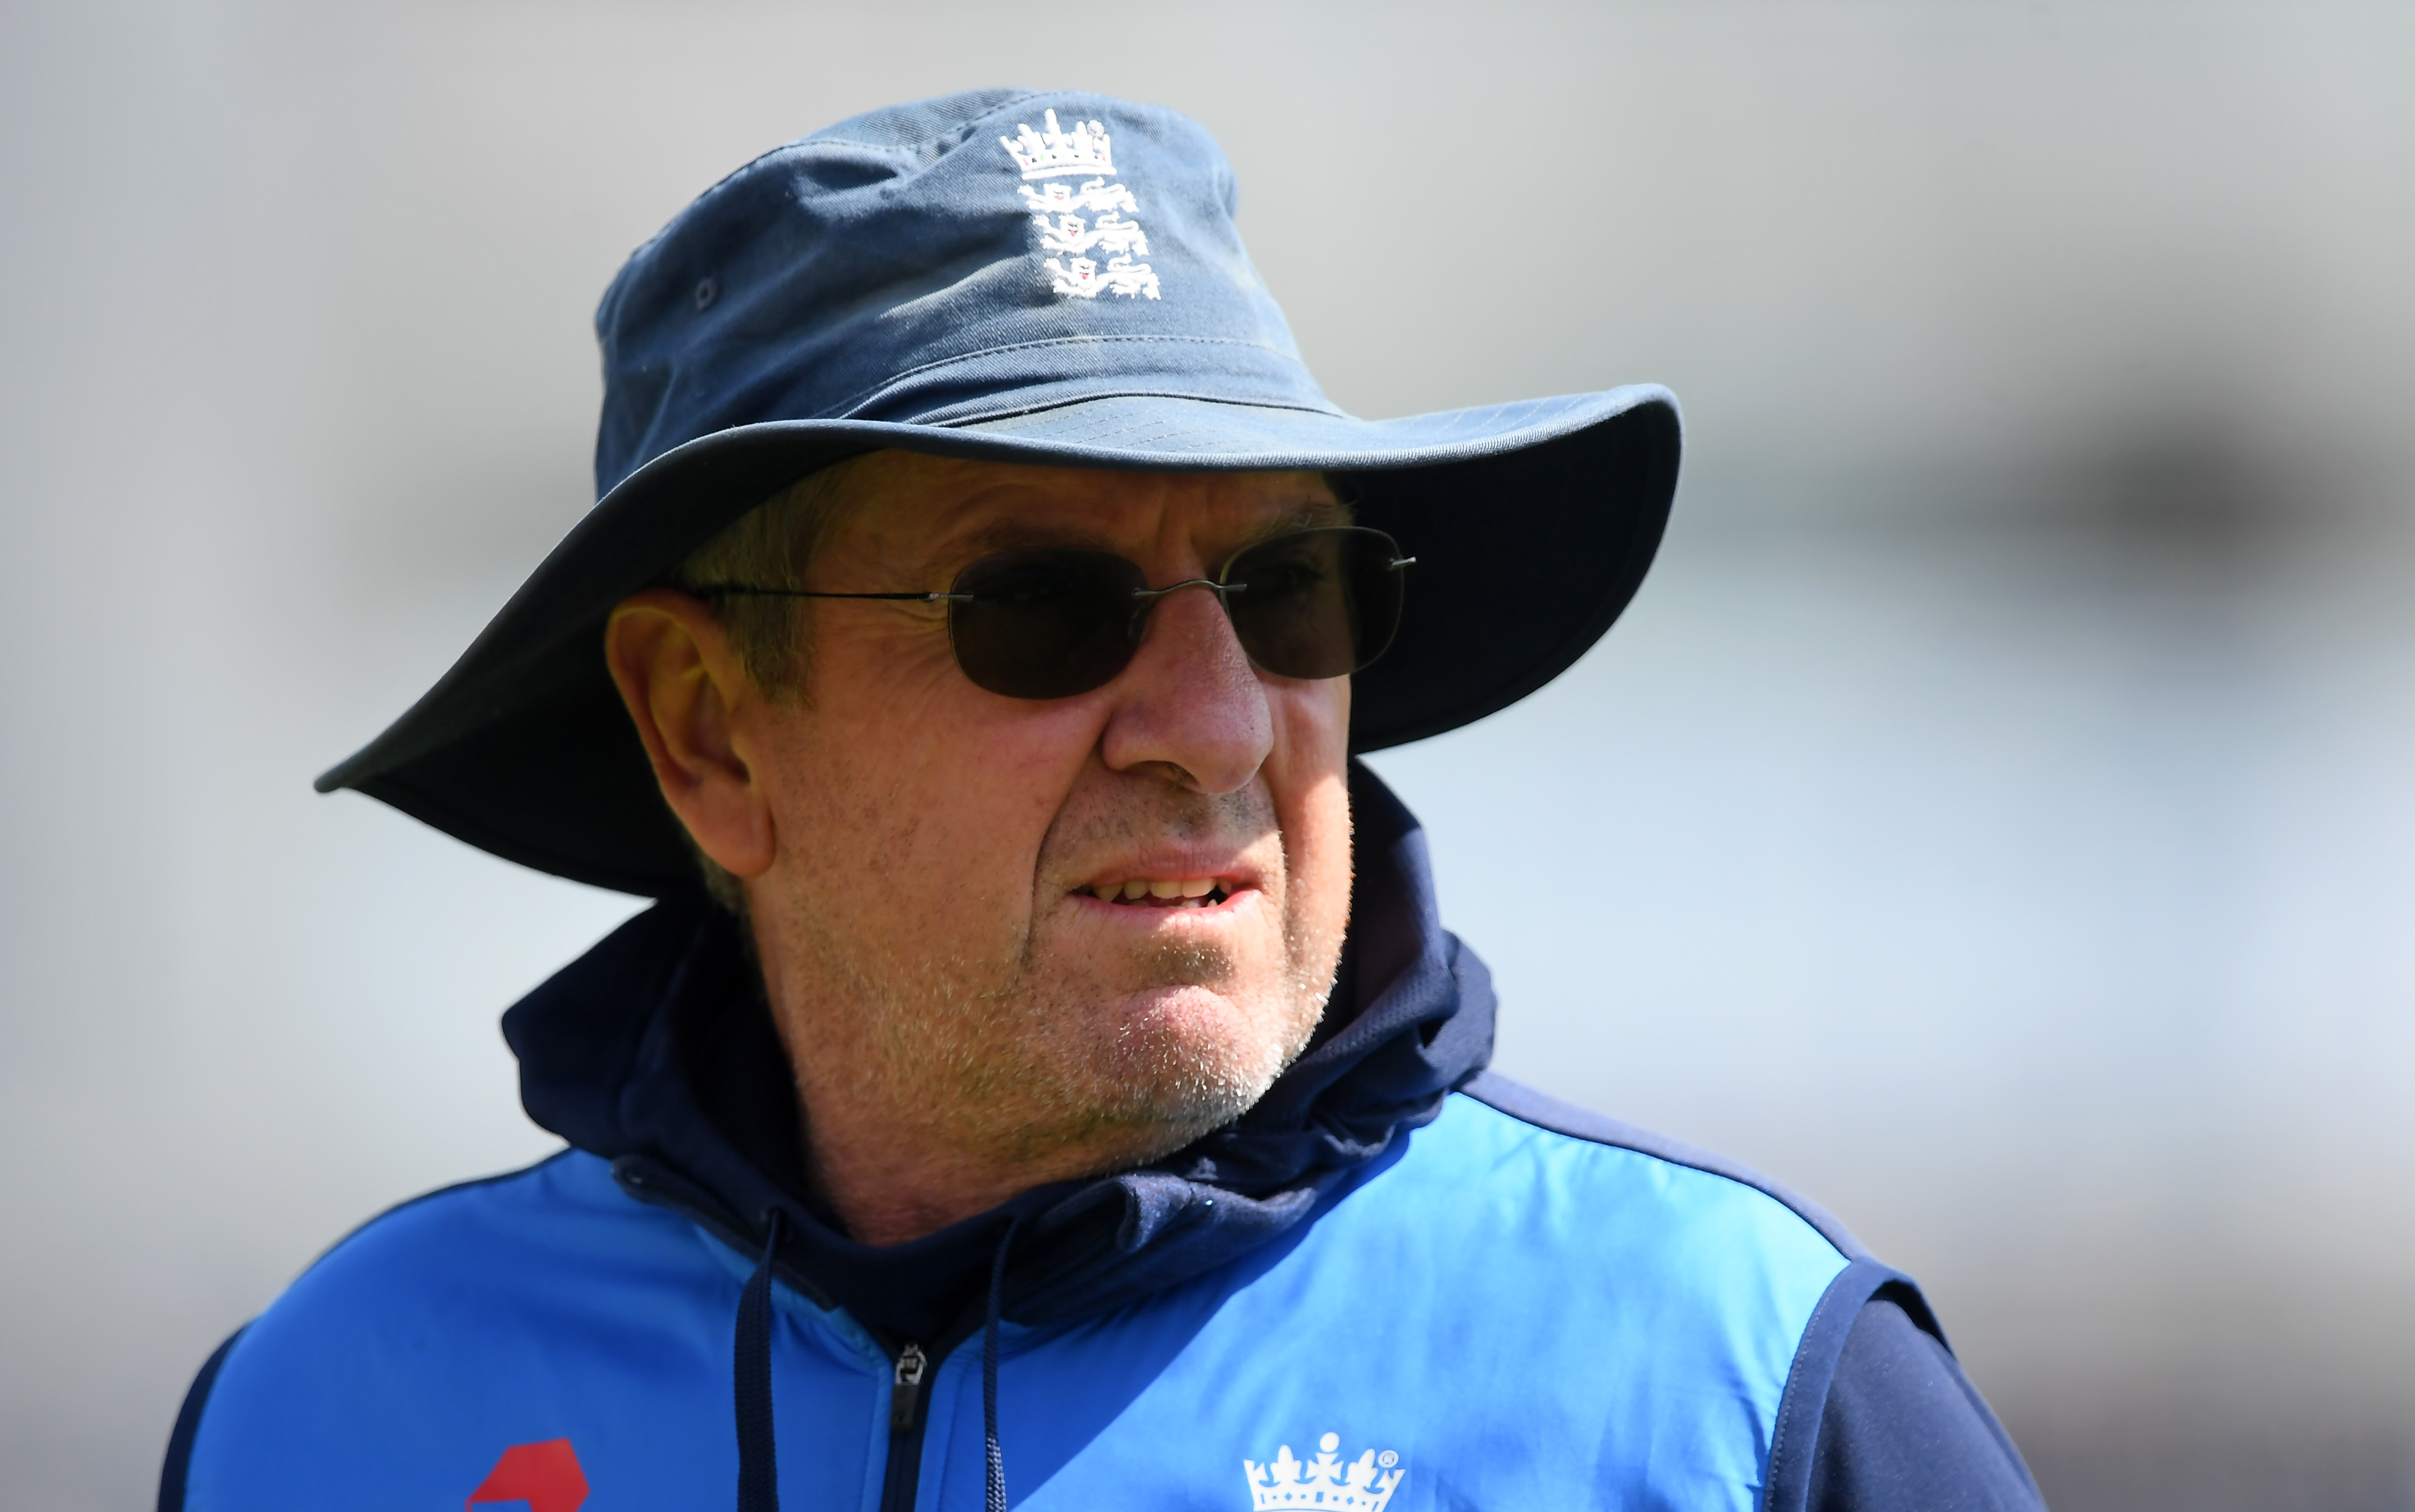 England news 'He's under no pressure' – Bayliss backs Root to take England forward 11 Sep 19 - International Cricket Council thumbnail